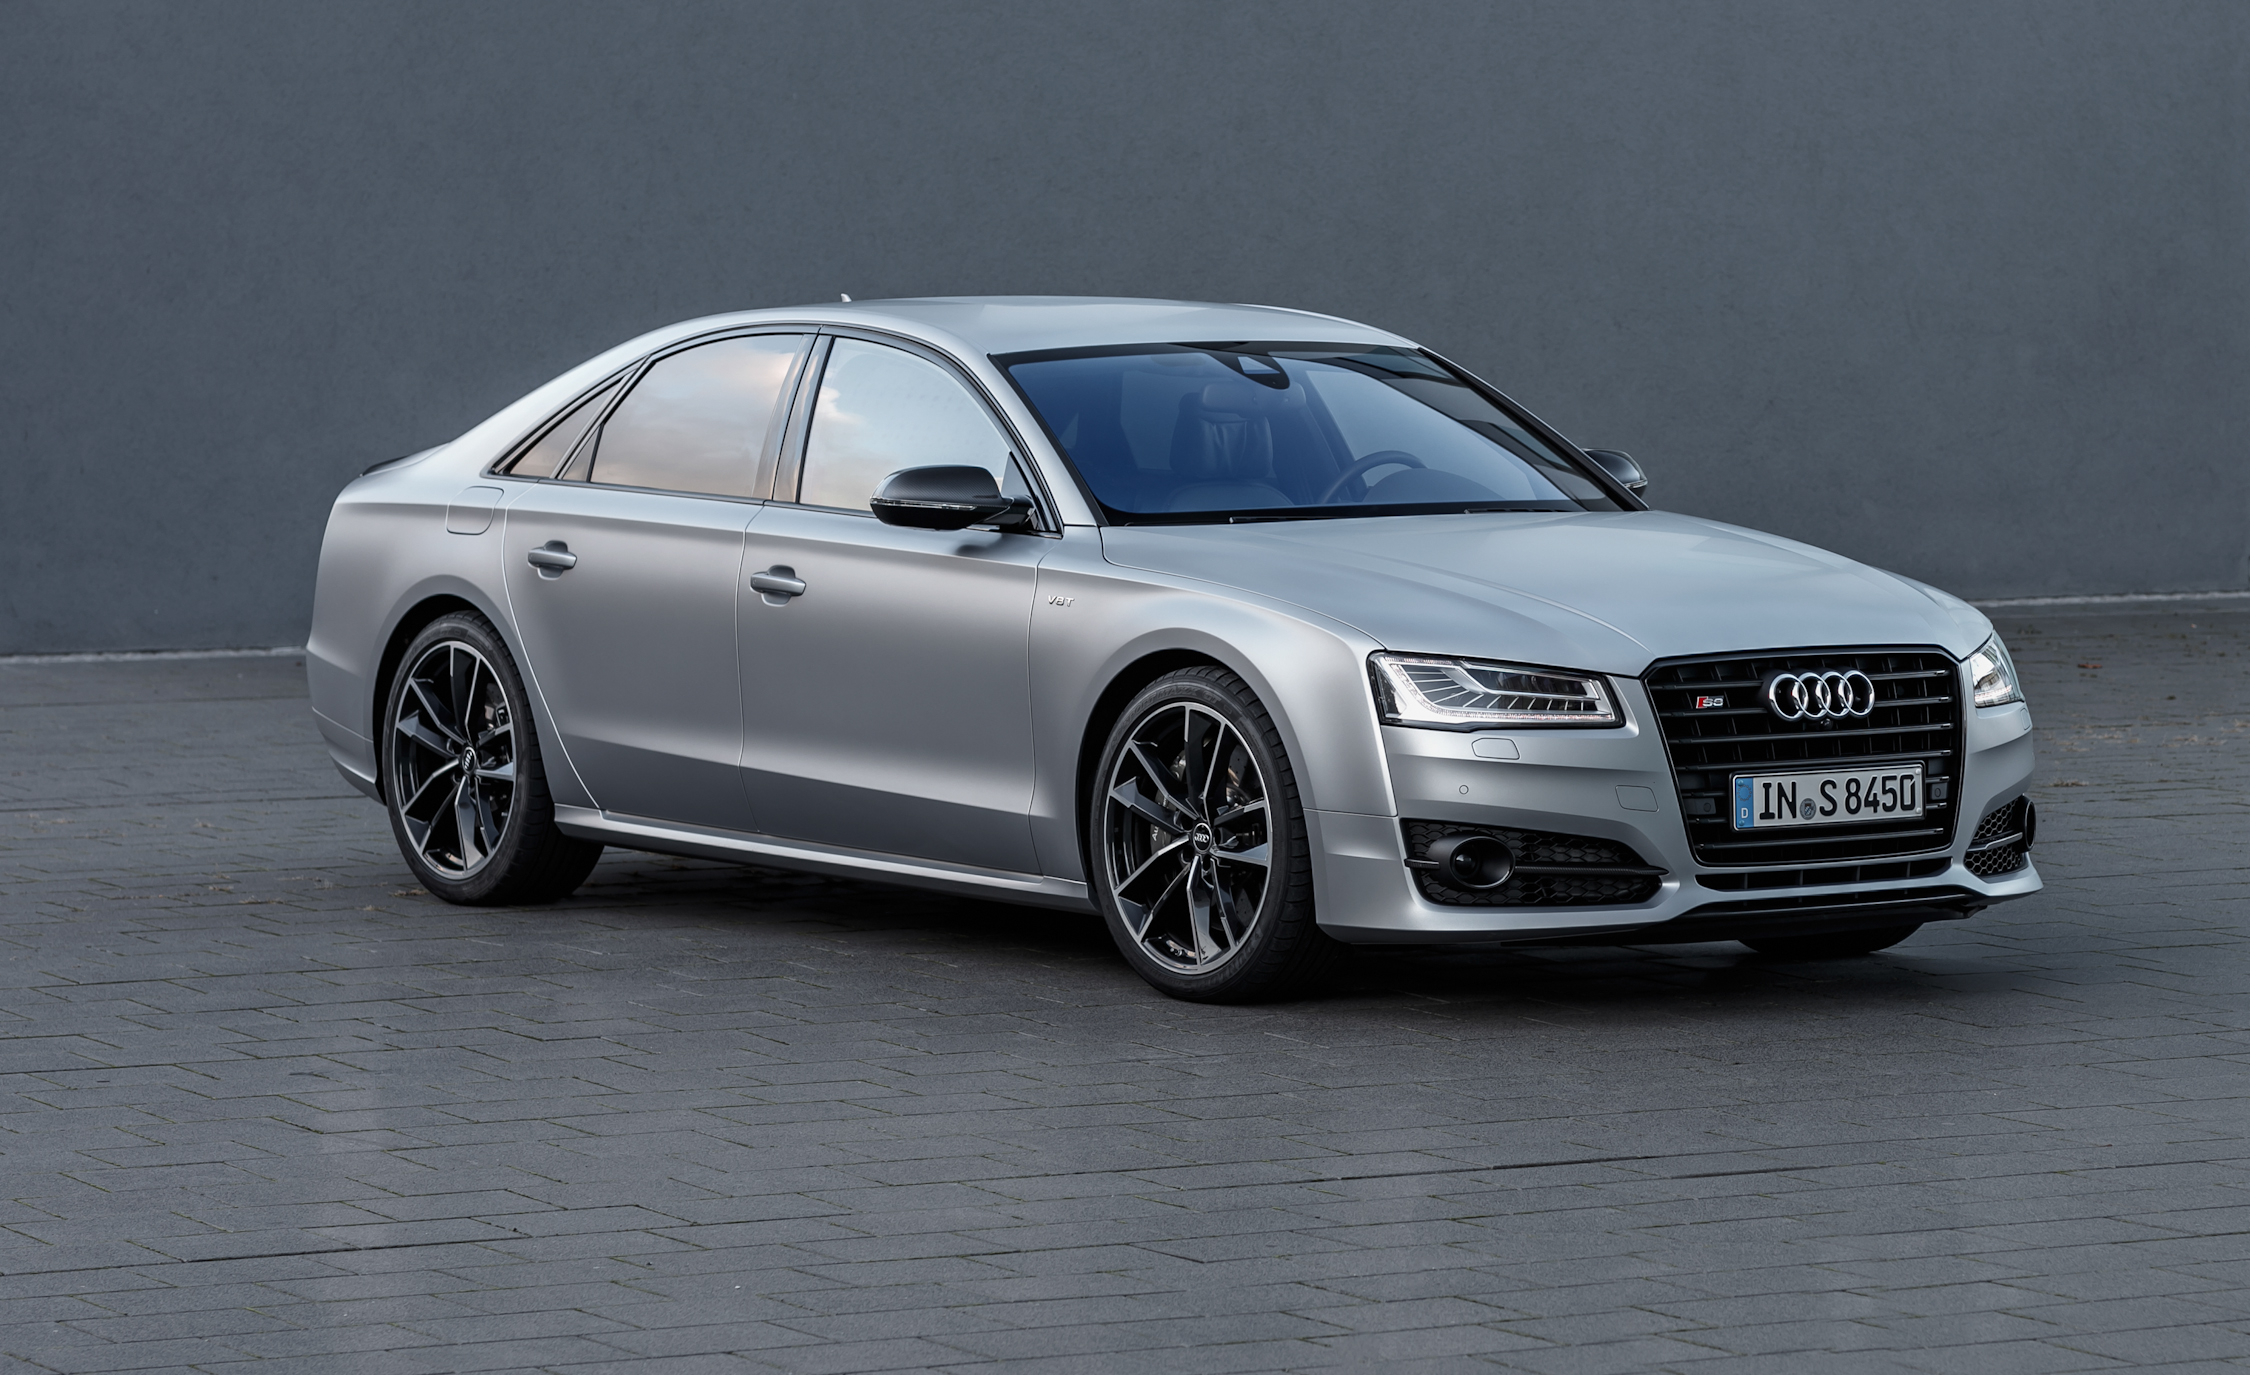 2016 Audi S8 Plus Exterior Front and Side